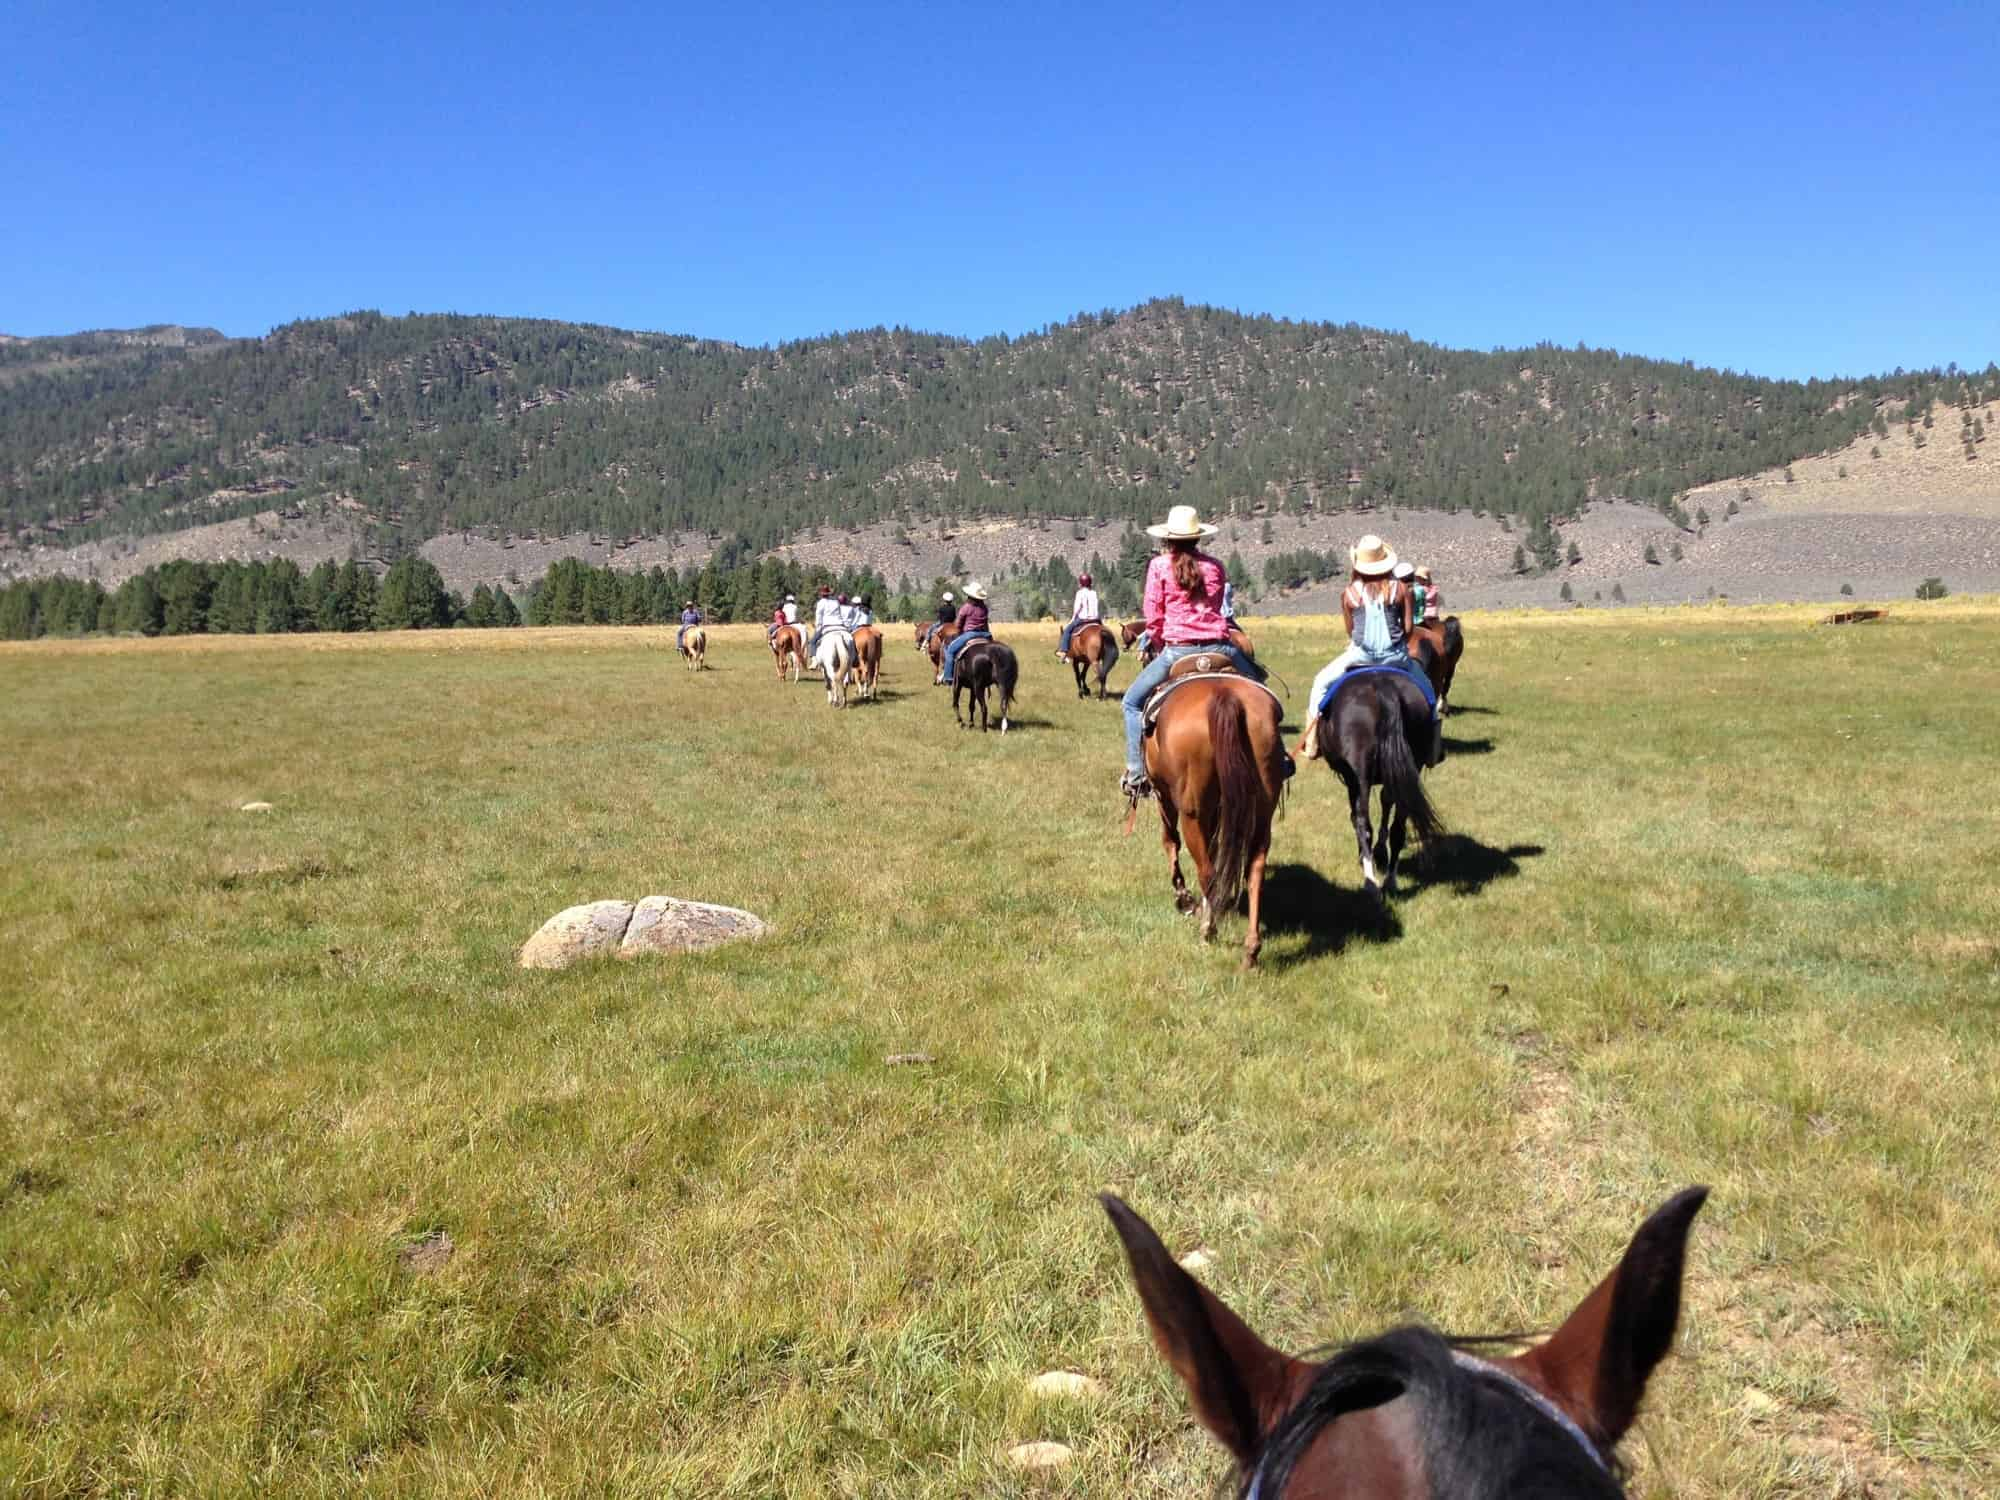 Trekaroo's Dude Ranch Vacation Guide for Families